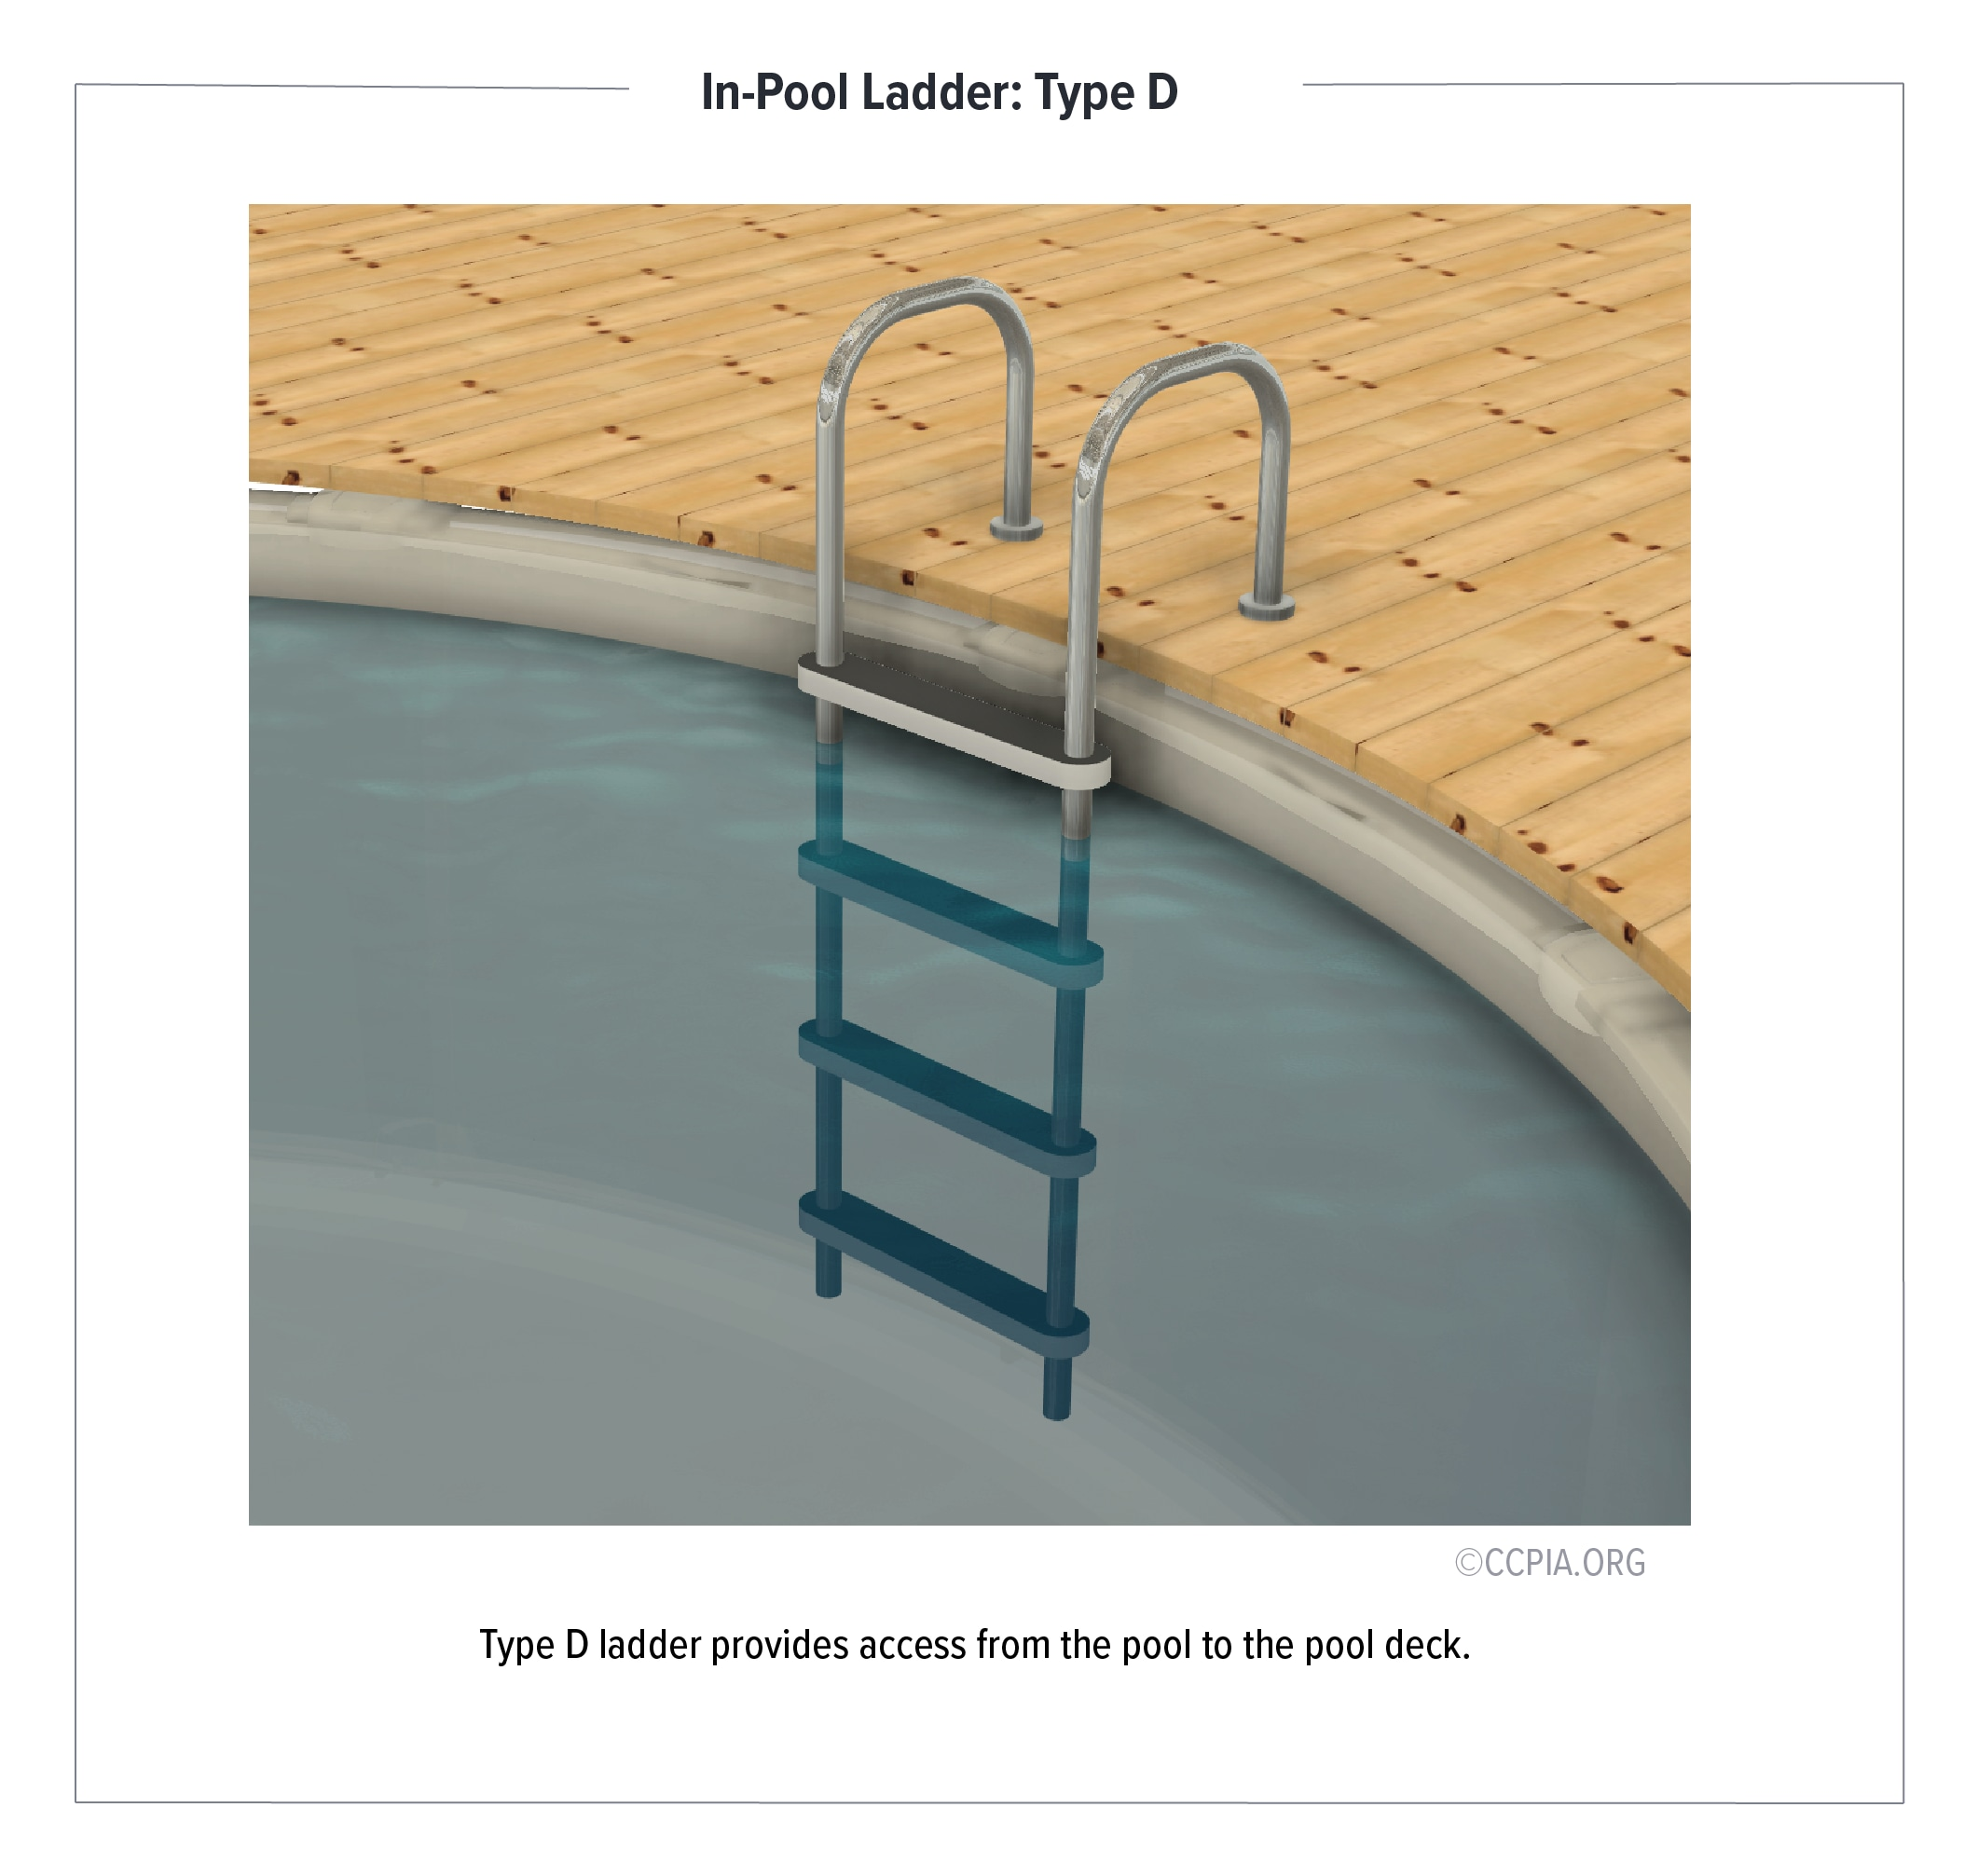 In-Pool Ladder: Type D ladder provides access from the pool to the pool deck.